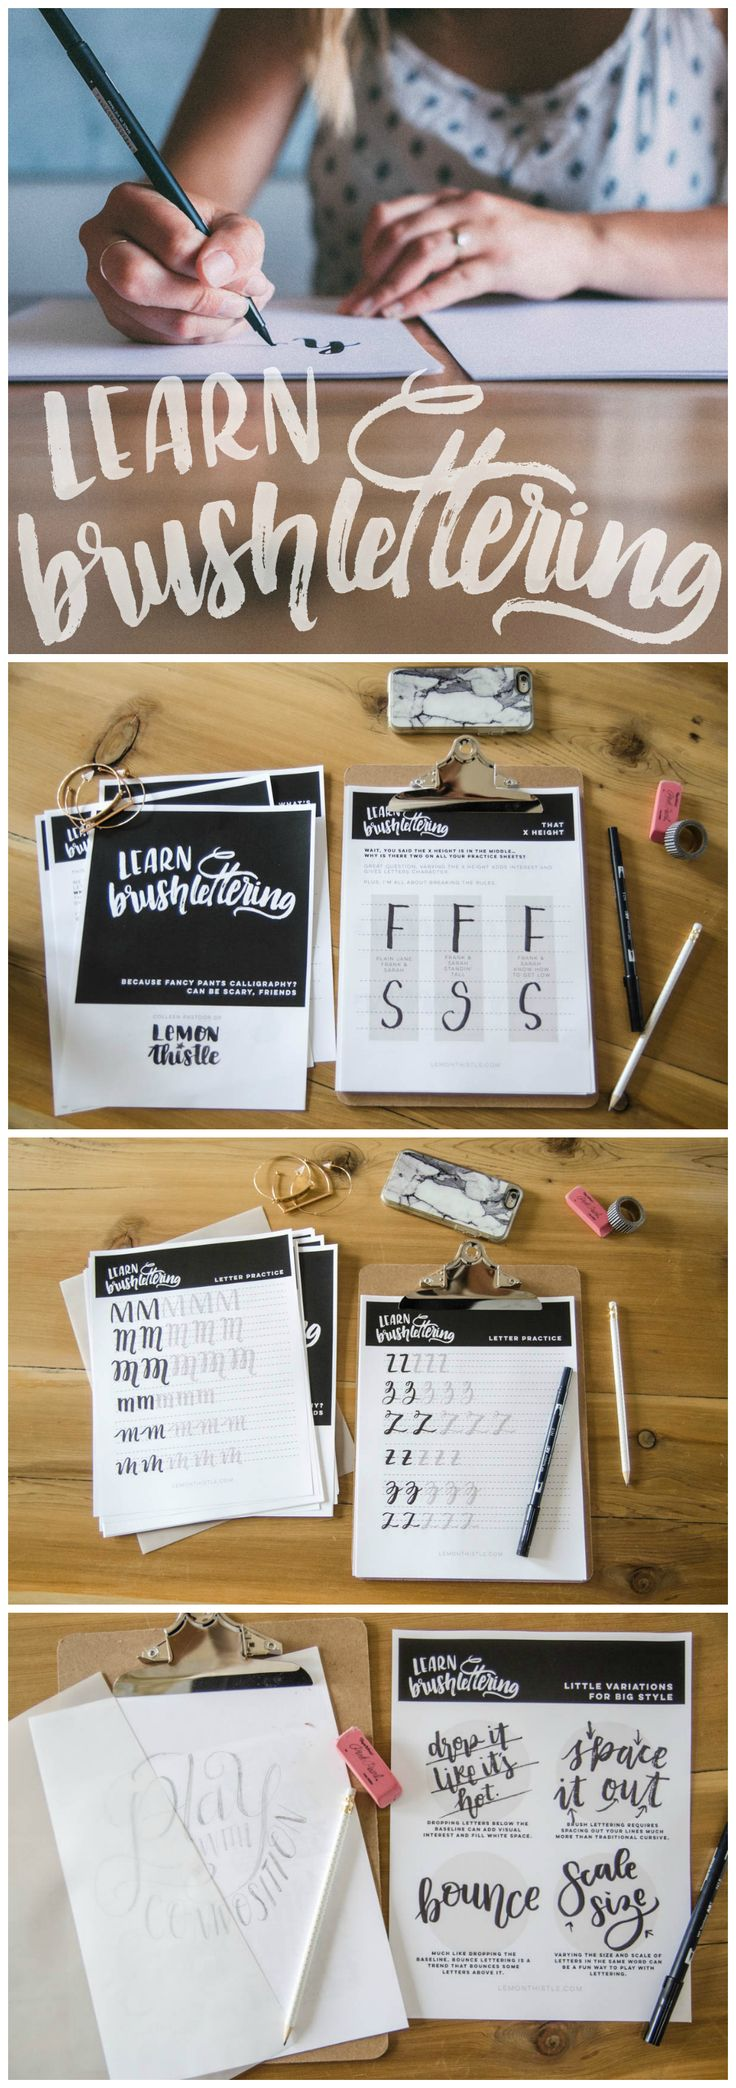 Learn Brush Lettering - Course from LemonThistle. Includes: 50+ page workbook, supply list, how to hold your pen, practice strokes, different style guides and how to digitize your hand lettering.